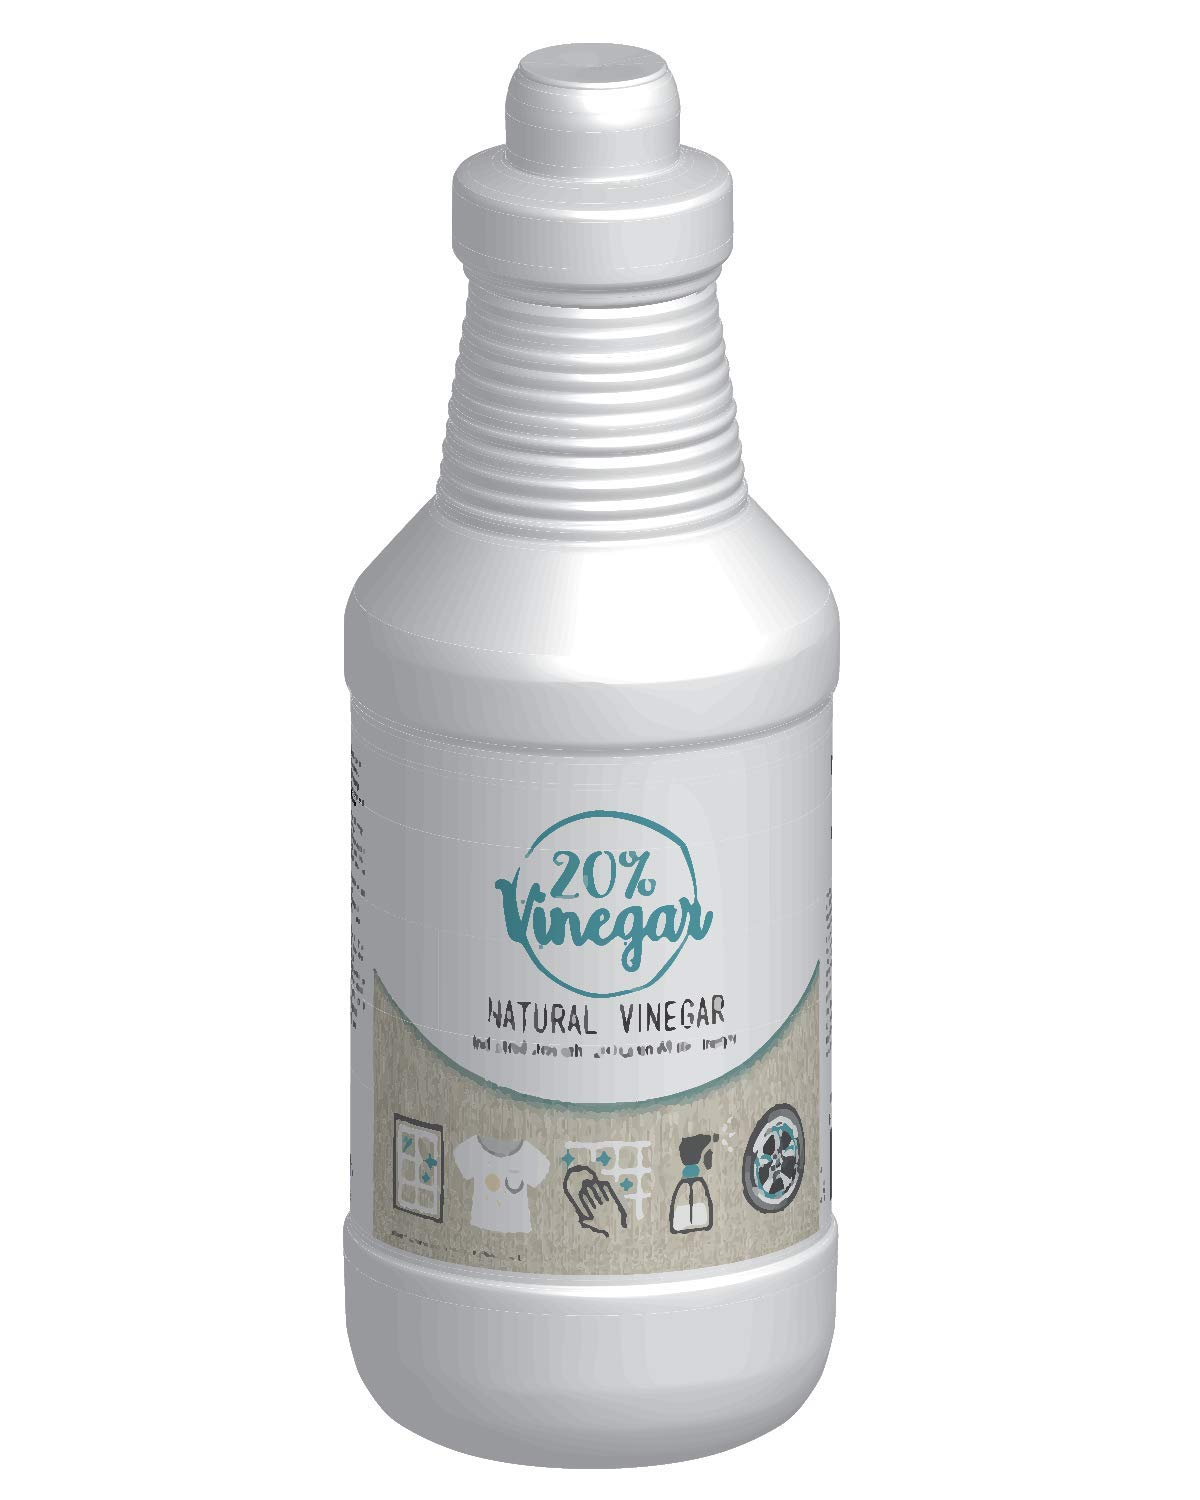 20% White Vinegar - 200 Grain Vinegar Concentrate - 1 Quart of Natural and Safe Multi-Use Concentrated Industrial Vinegar Bluewater Chemgroup